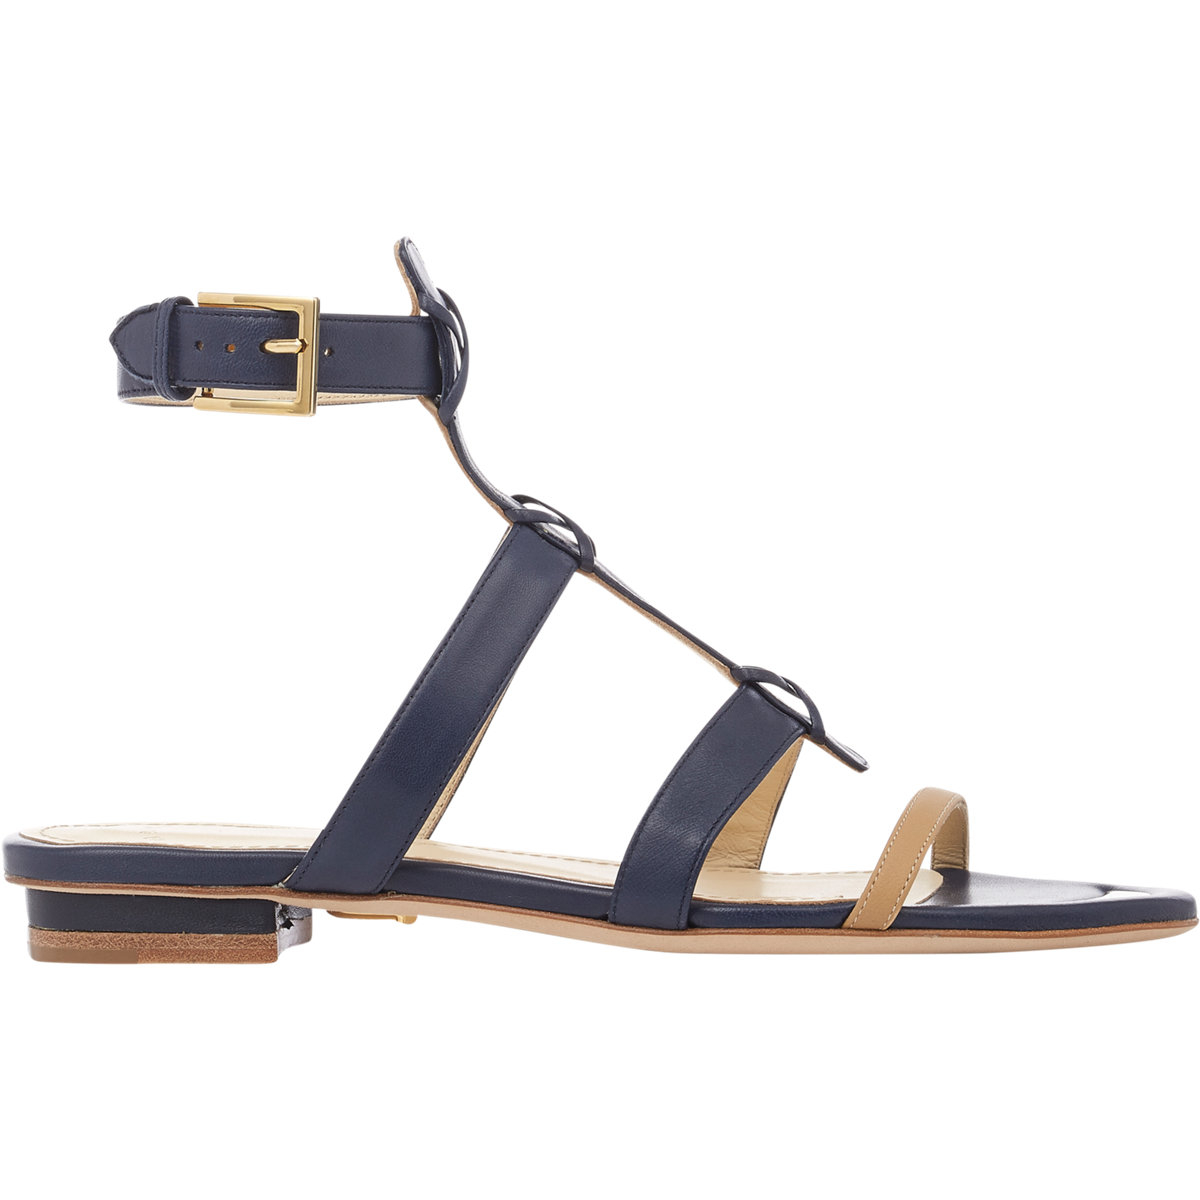 Maiyet Suede Gladiator Sandals wide range of cheap online XPdOC265J